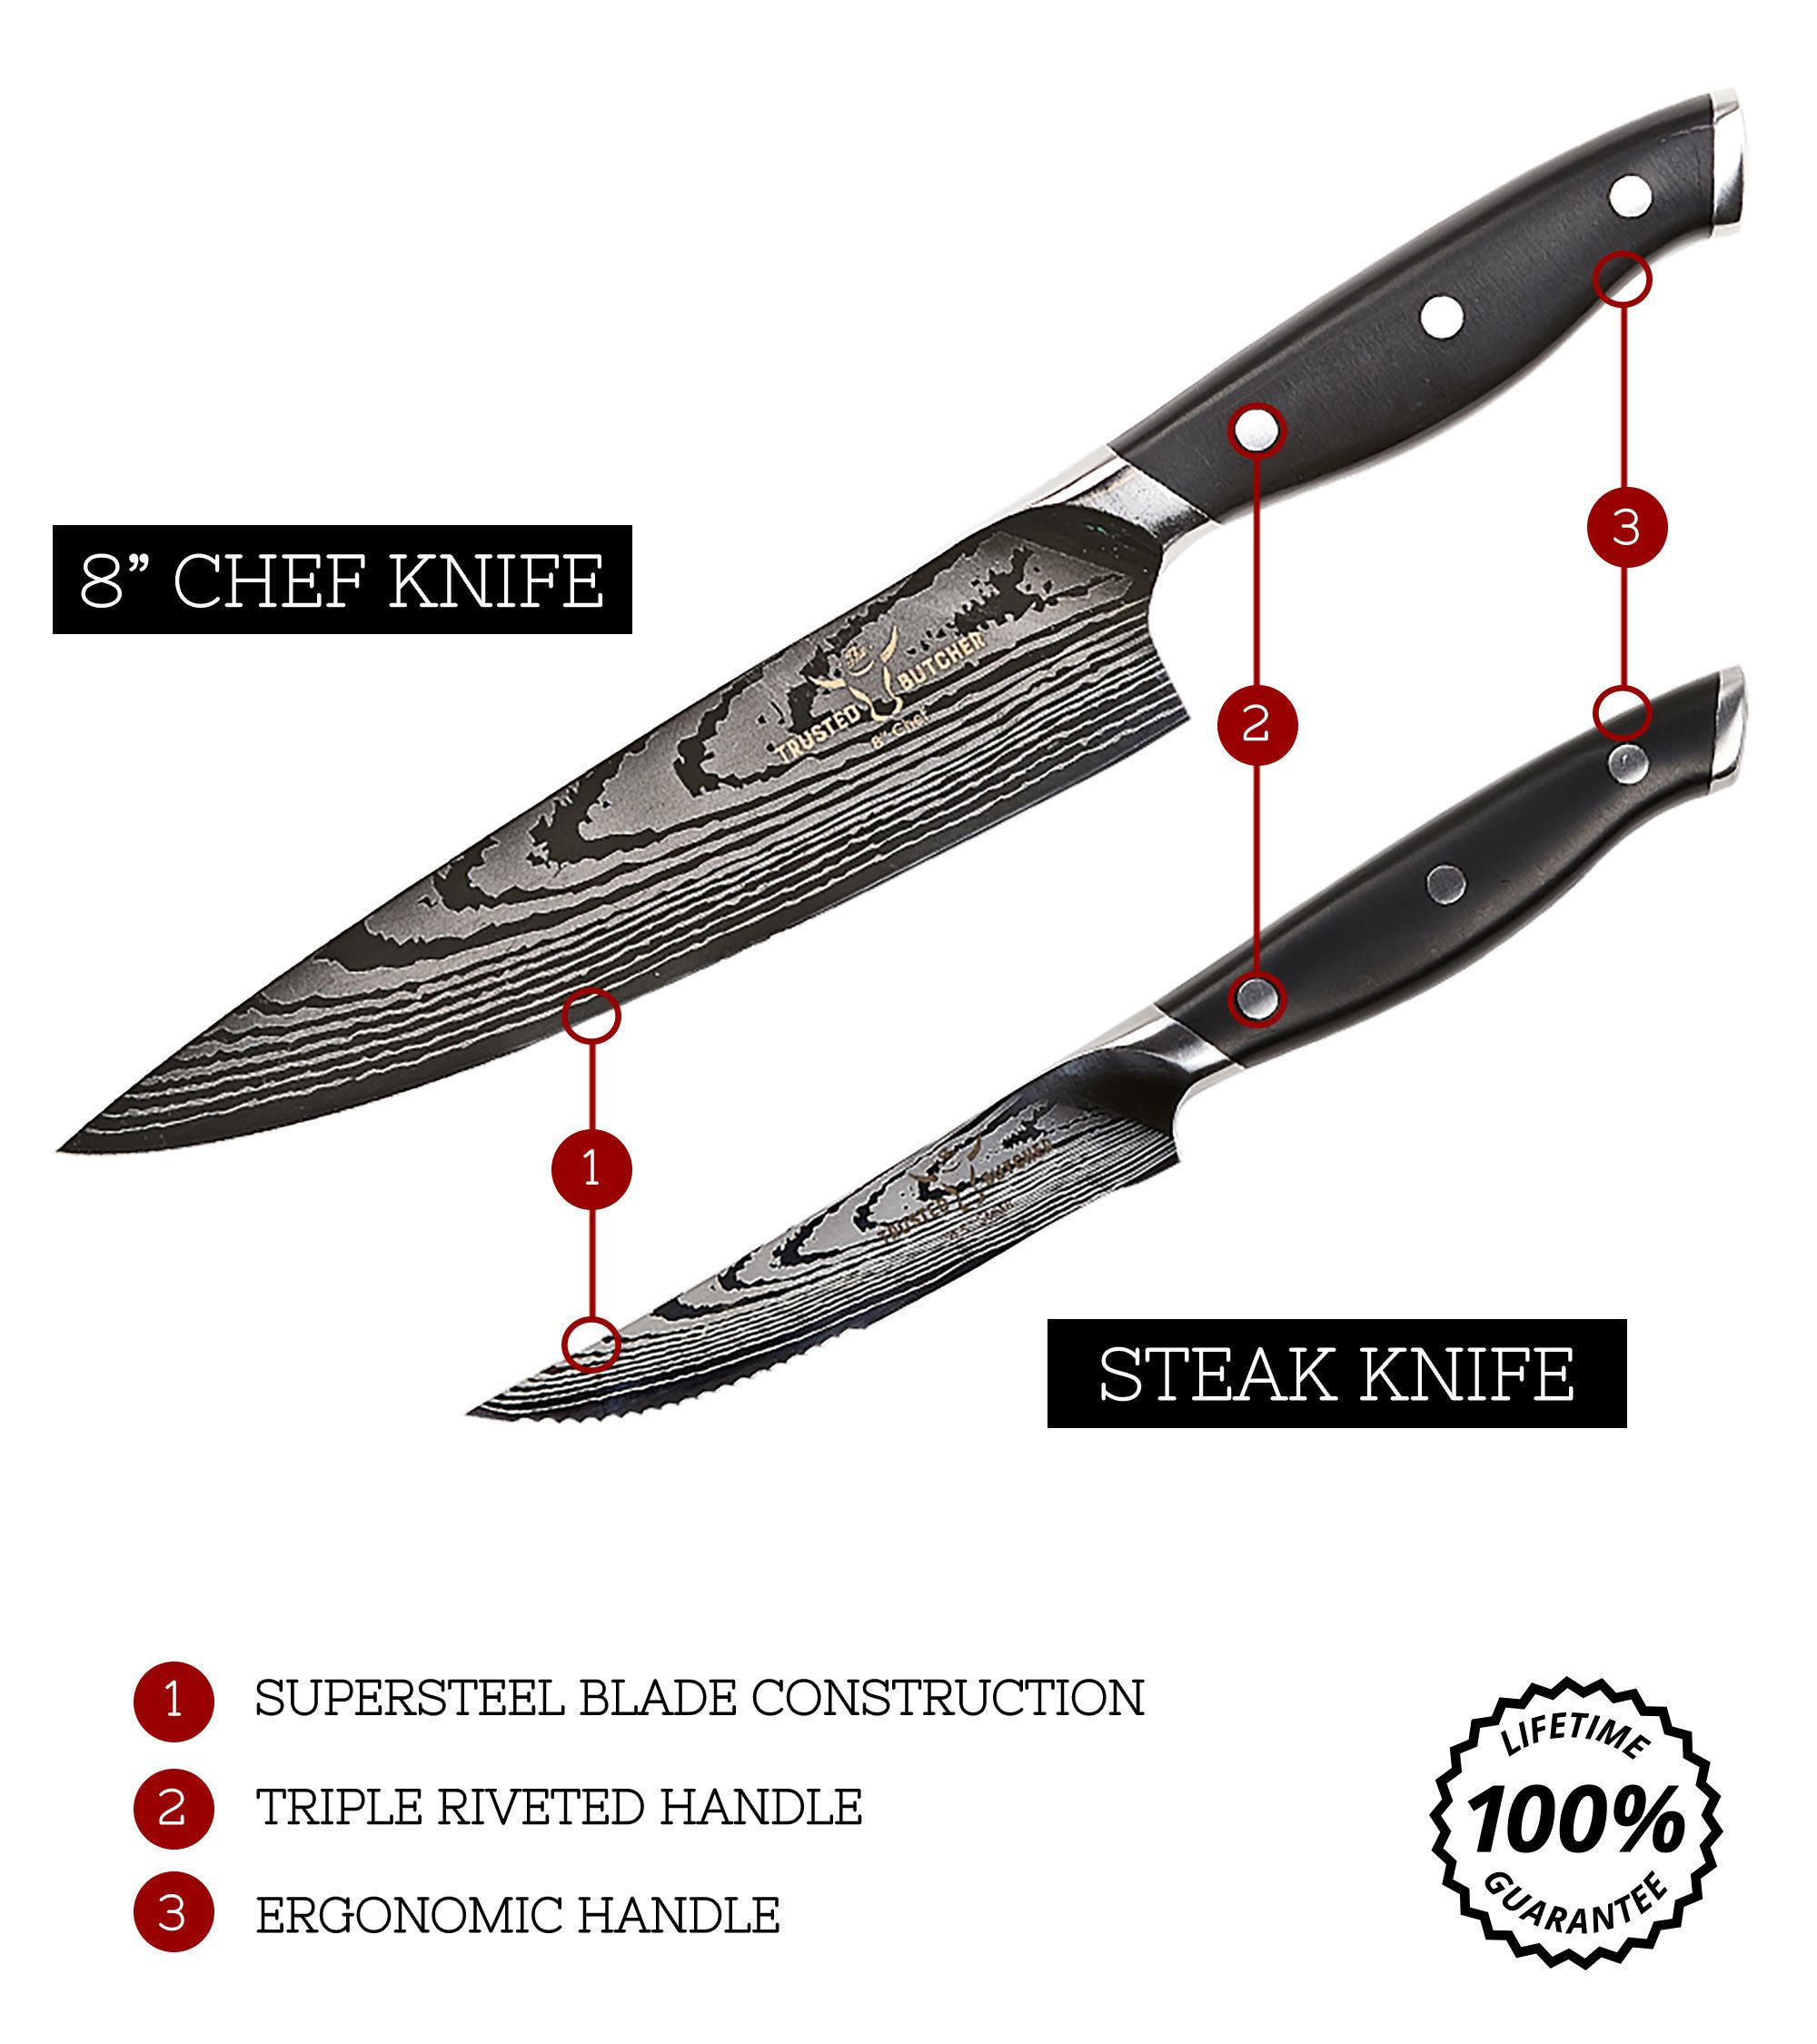 The Trusted Butcher knives features